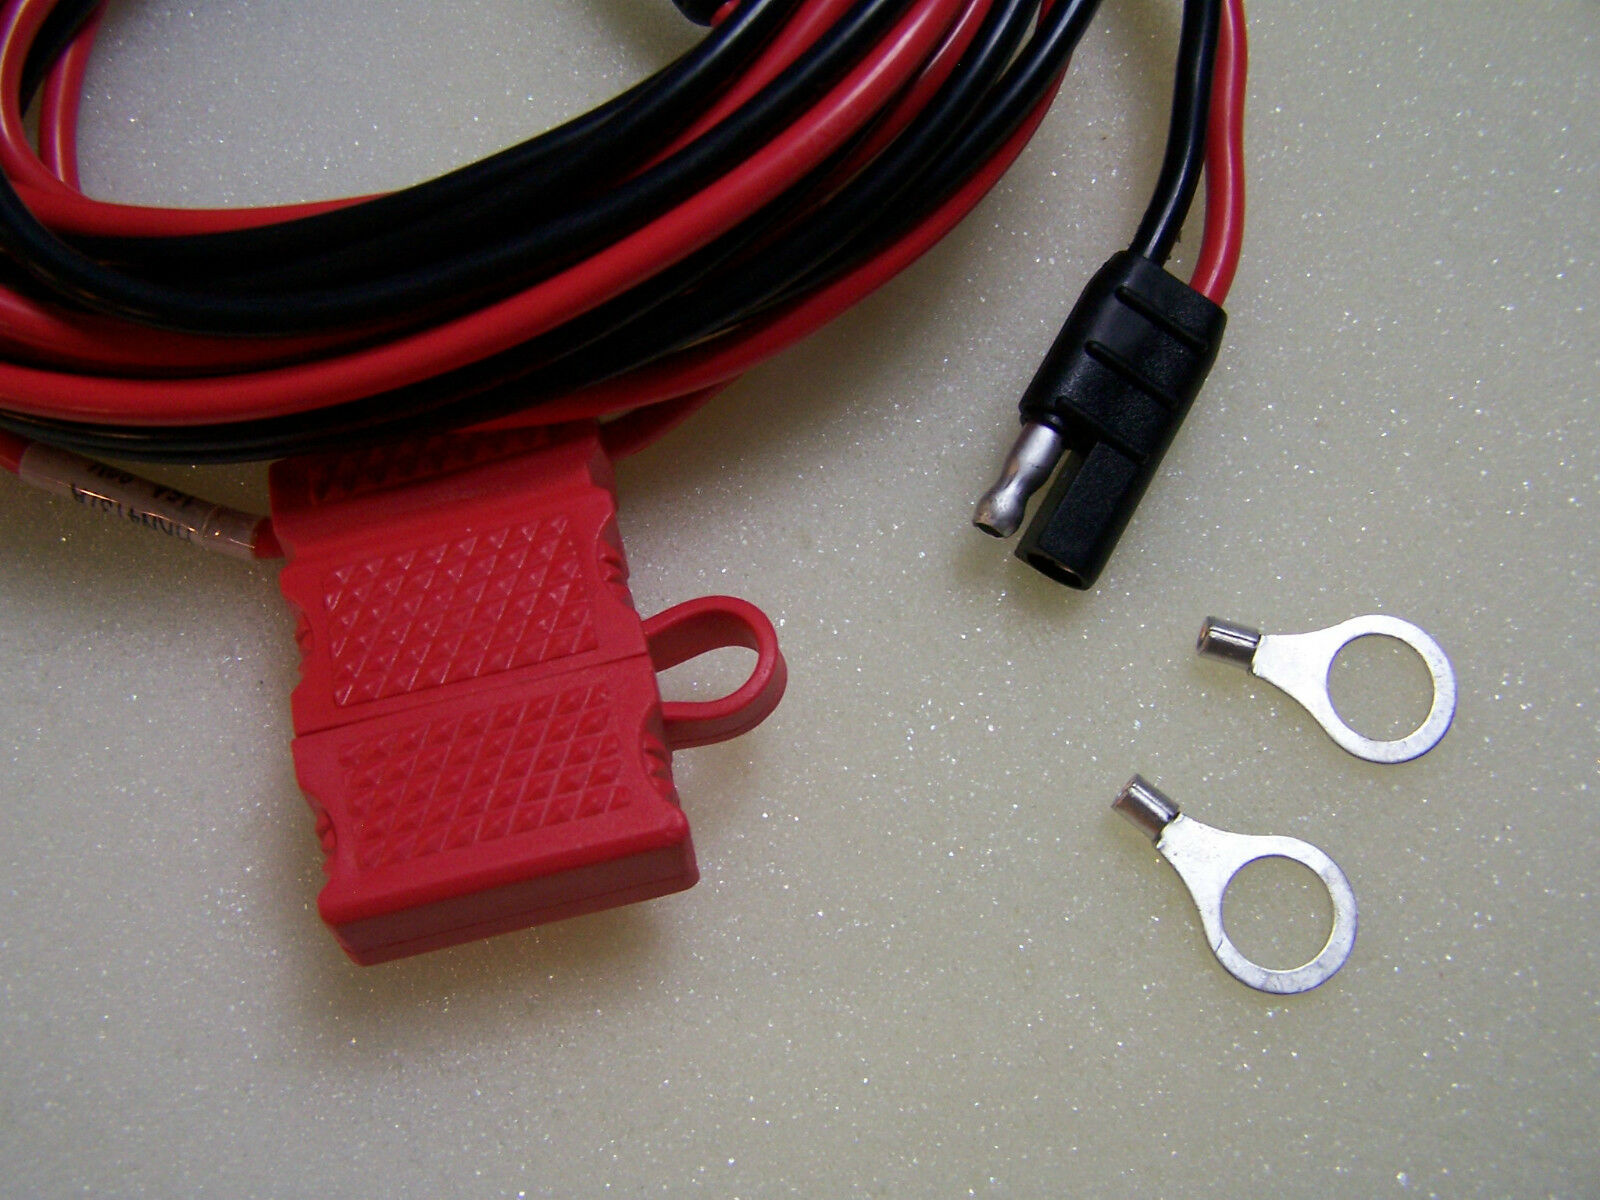 Qty 10 POWER CABLE FOR MOTOROLA HKN4137 CDM750 CDM1250 CDM1550 GM300 M1225 . Available Now for 88.00